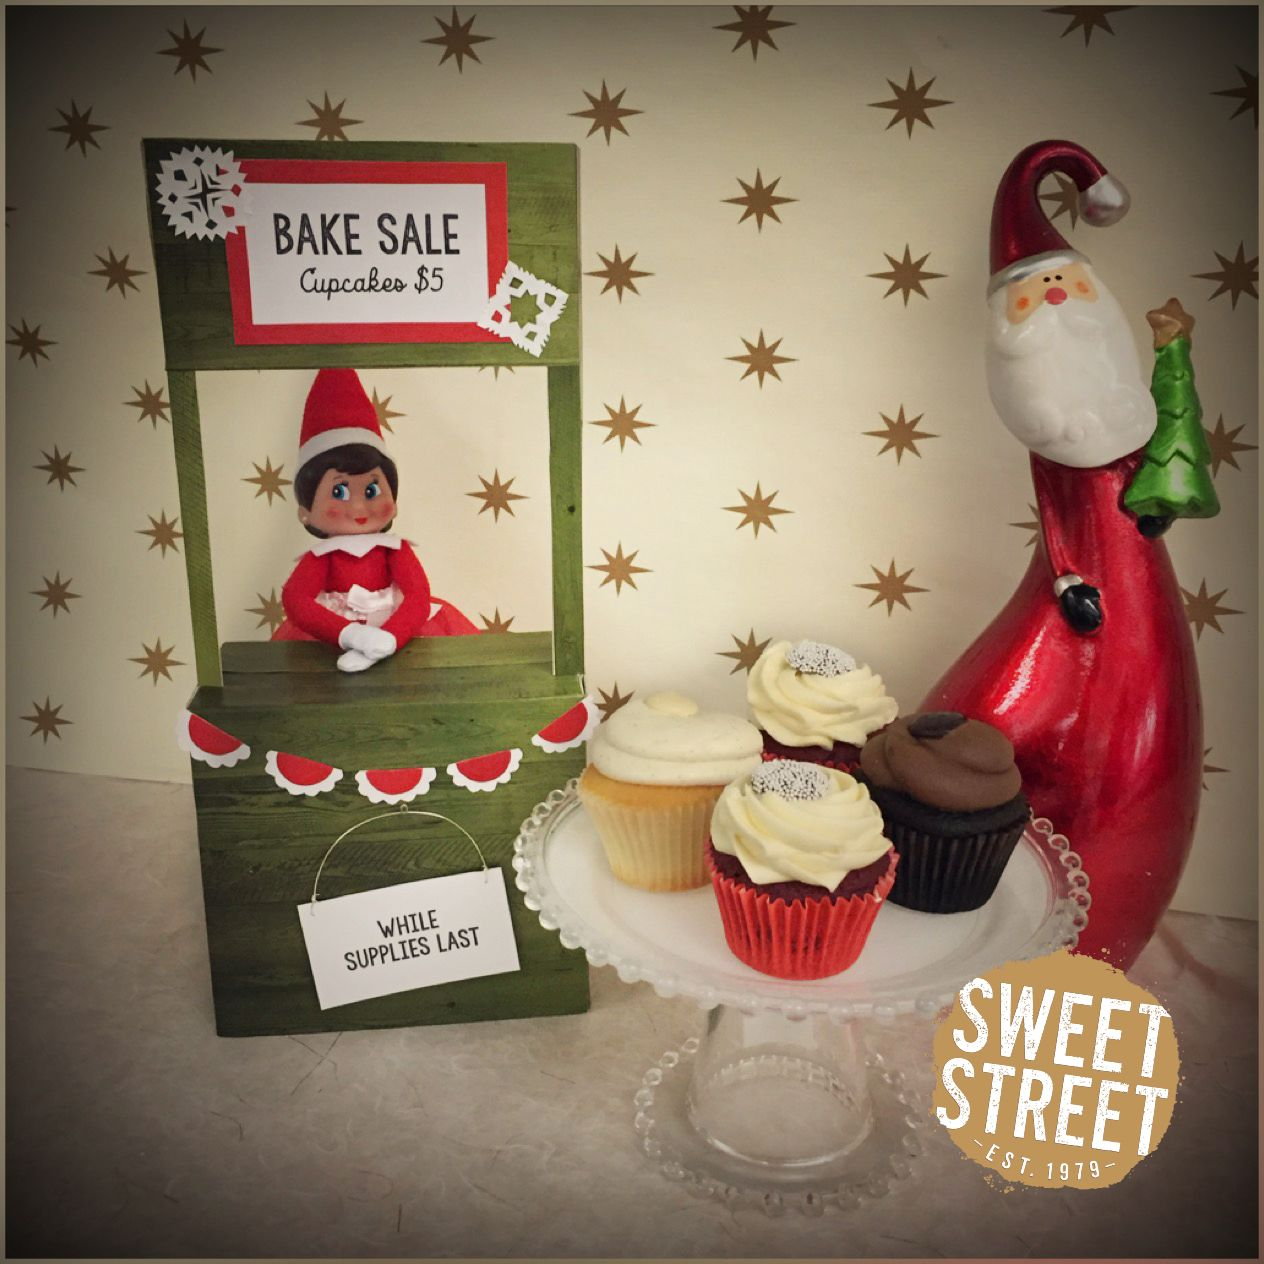 Bake sale anyone? Our Elf on the Shelf, Mod, is raising money for ...